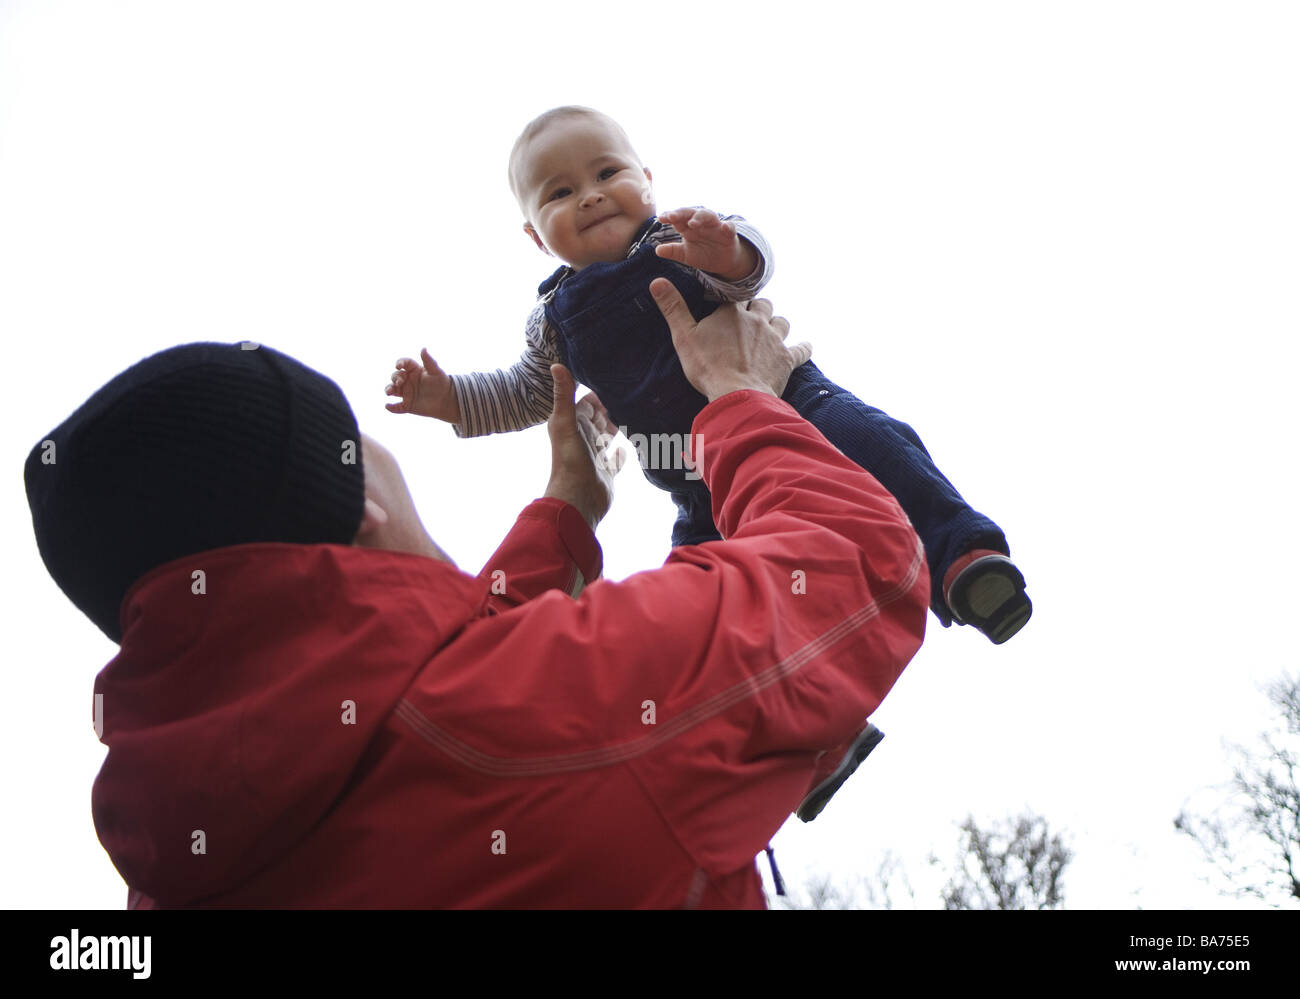 Father baby people throws up man parent paternity jacket red cap headgear love luck feelings emotion fun plays happiness - Stock Image